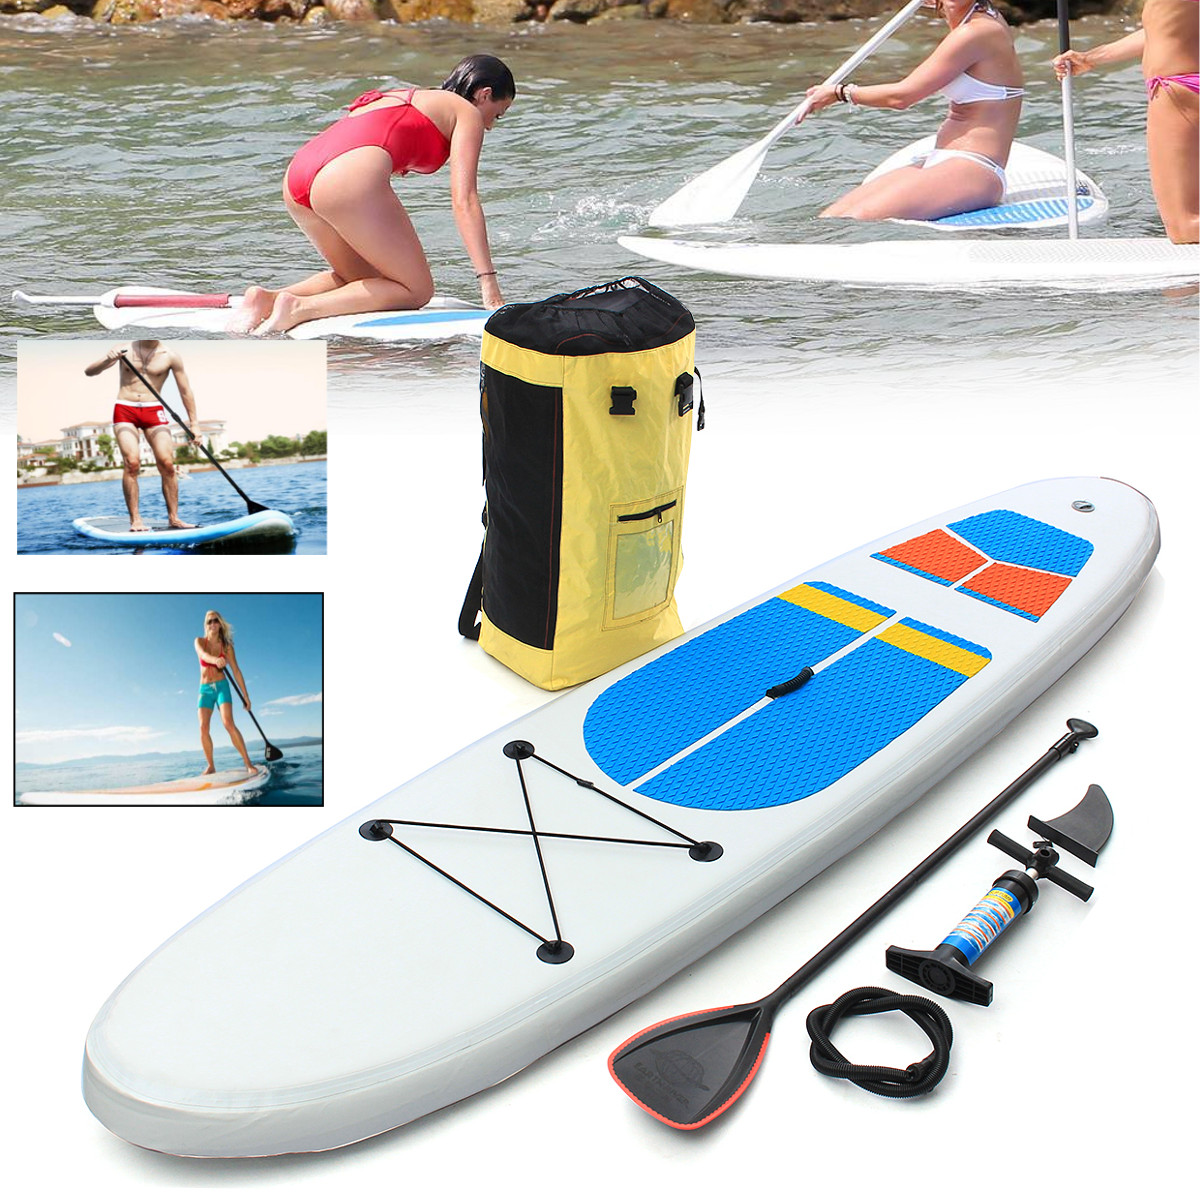 Gofun 305 * 81 * 10cm Stand Up Paddle Surfboard Inflatable Board SUP Set Wave Rider Blue inflatable surf board sup paddle boat 2016 big cheaper 10 10 vapor surfing stand up paddle board sup board paddle board surf board sup kayak inflatable boat